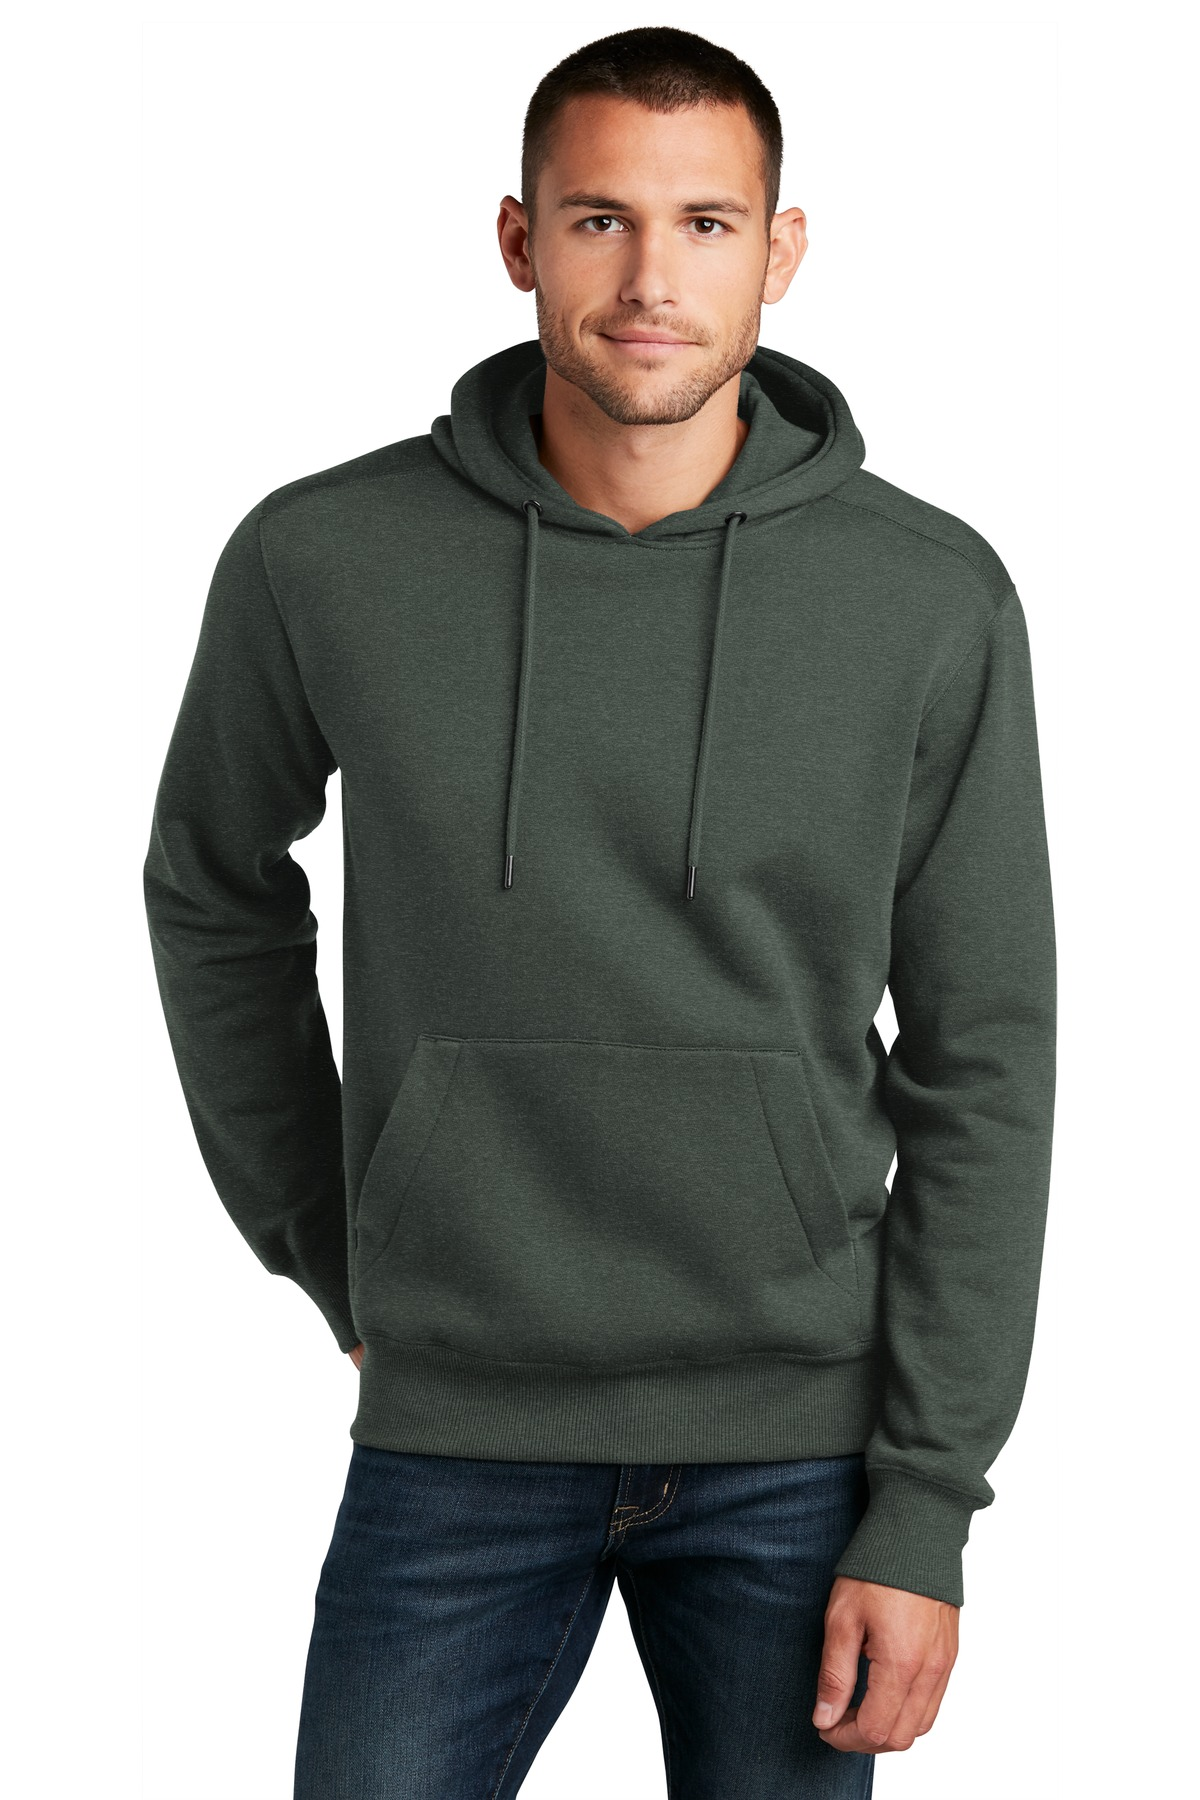 District  ®  Perfect Weight  ®  Fleece Hoodie DT1101 - Heathered Forest Green